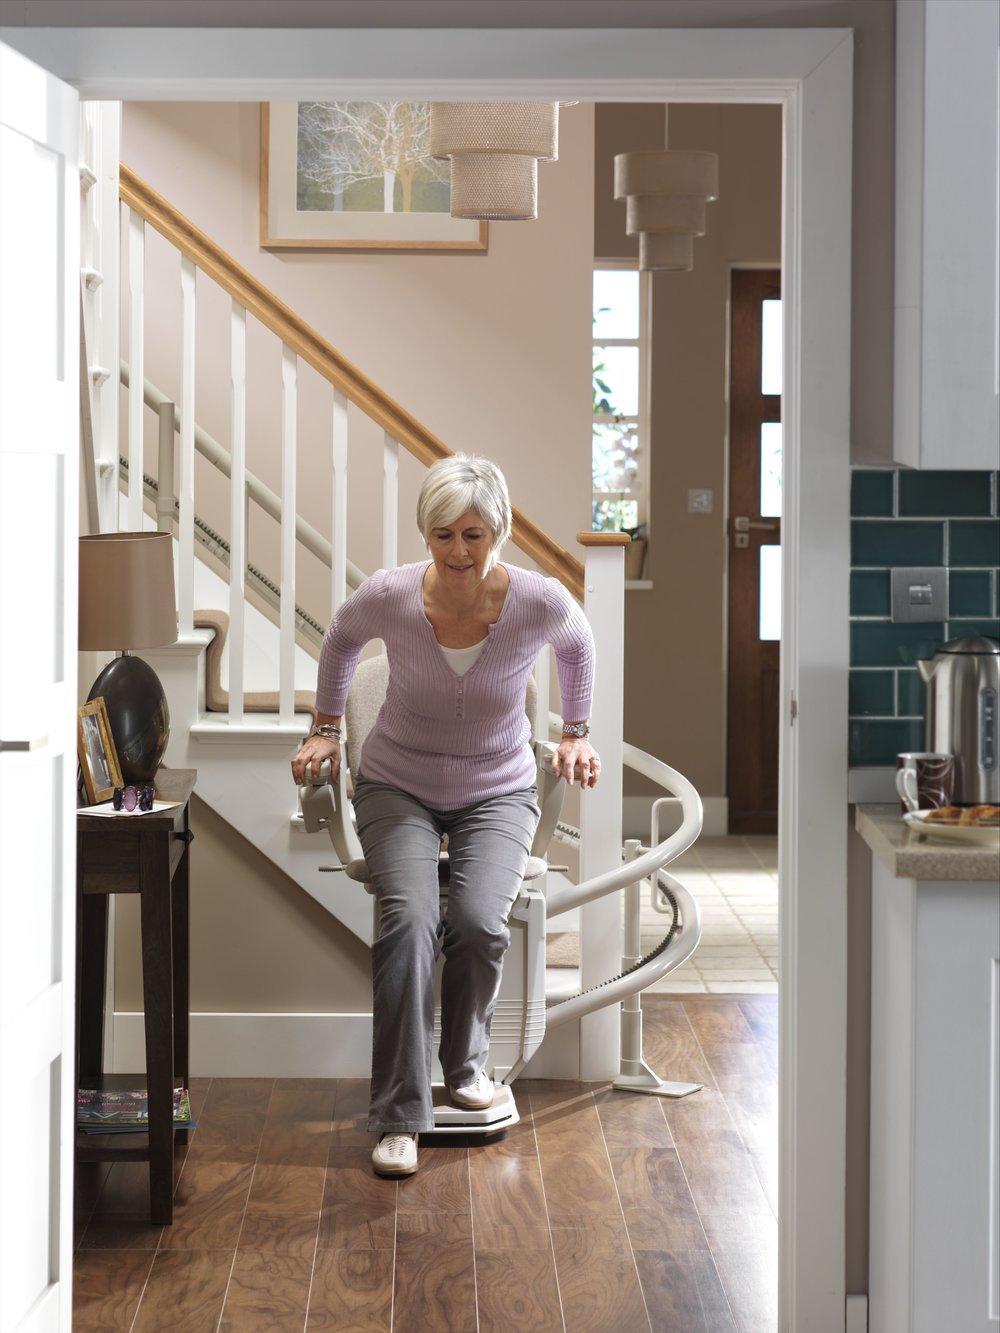 Starla-curvedstairlift-model-getting-out-square-on.jpg